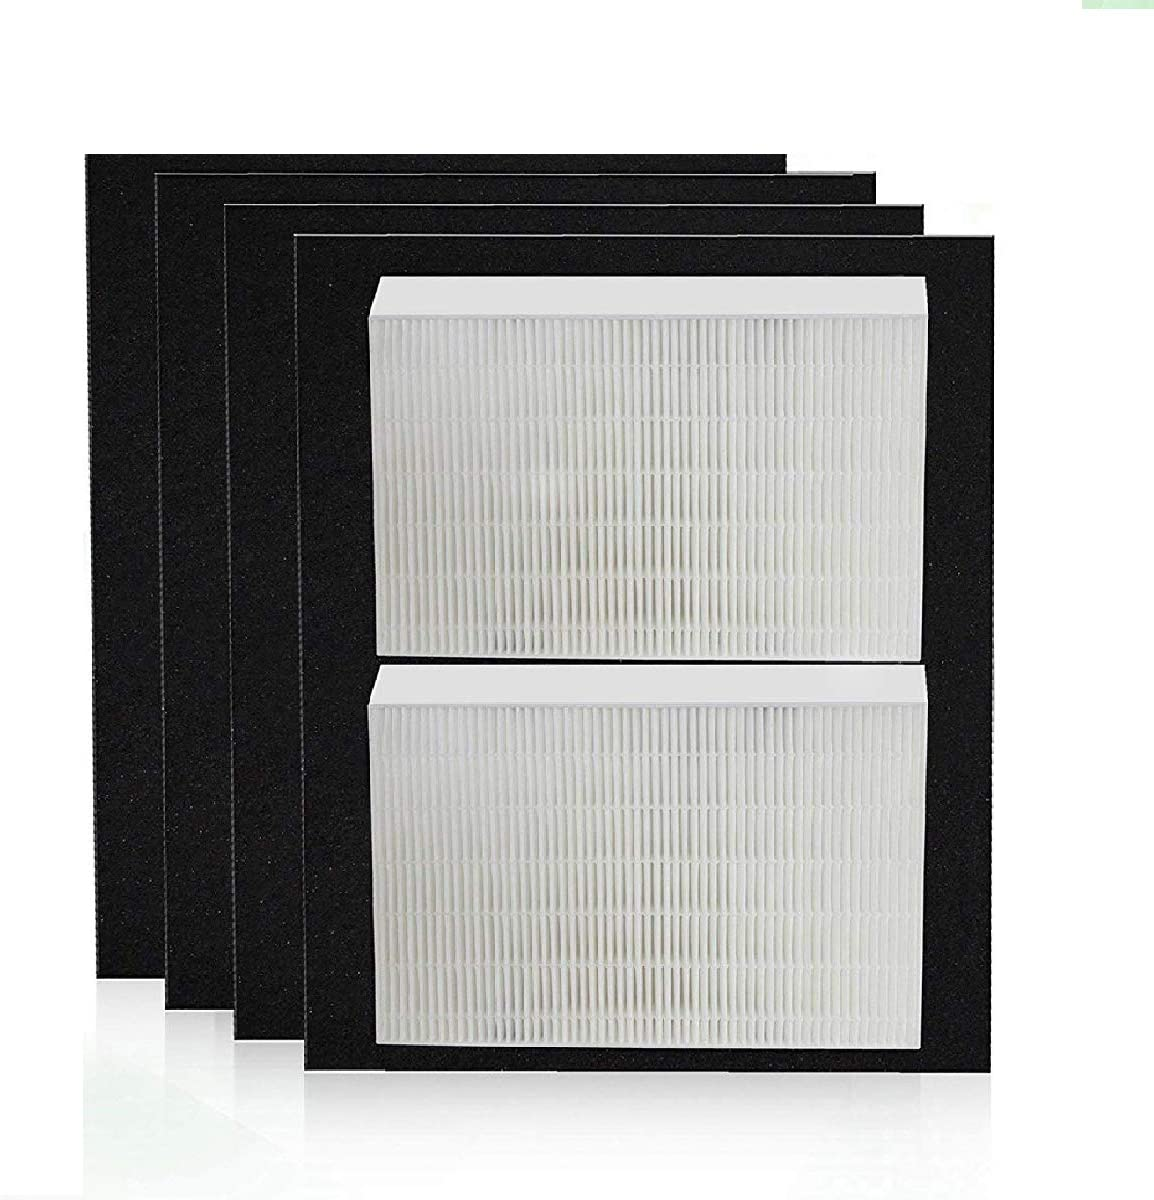 JUNHUI Premium Quality Replacement Filters for Honeywell True HEPA HPA200 Air Purifier, 2 True HEPA Filters + 4 Activated Carbon Prefilters HW HRF-R2 HRF-AP1 HPA204 HPA250B Filter R